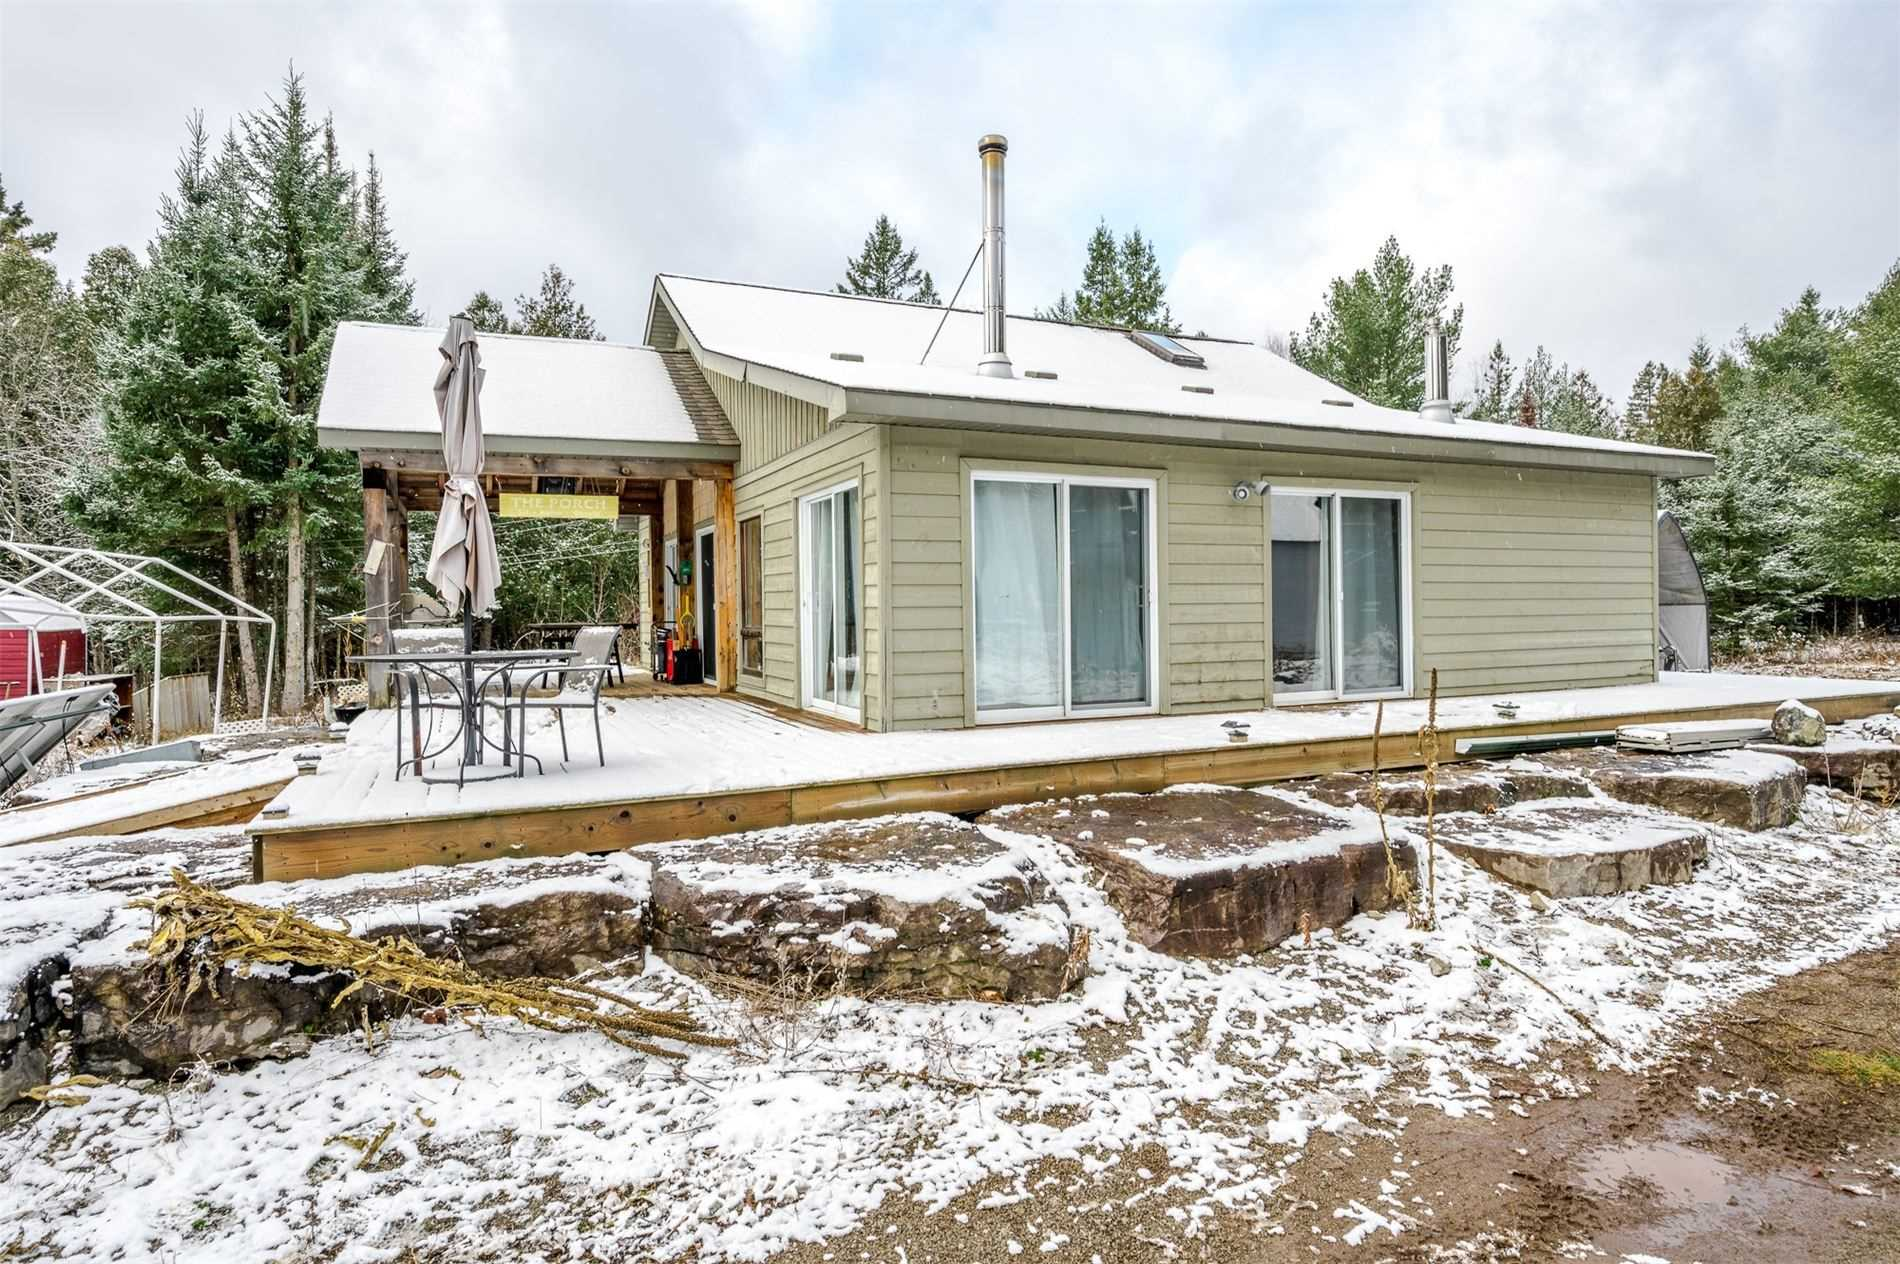 pictures of house for sale MLS: X4993551 located at 248 Ledge Rd, Galway-Cavendish and Harvey K0M1A0